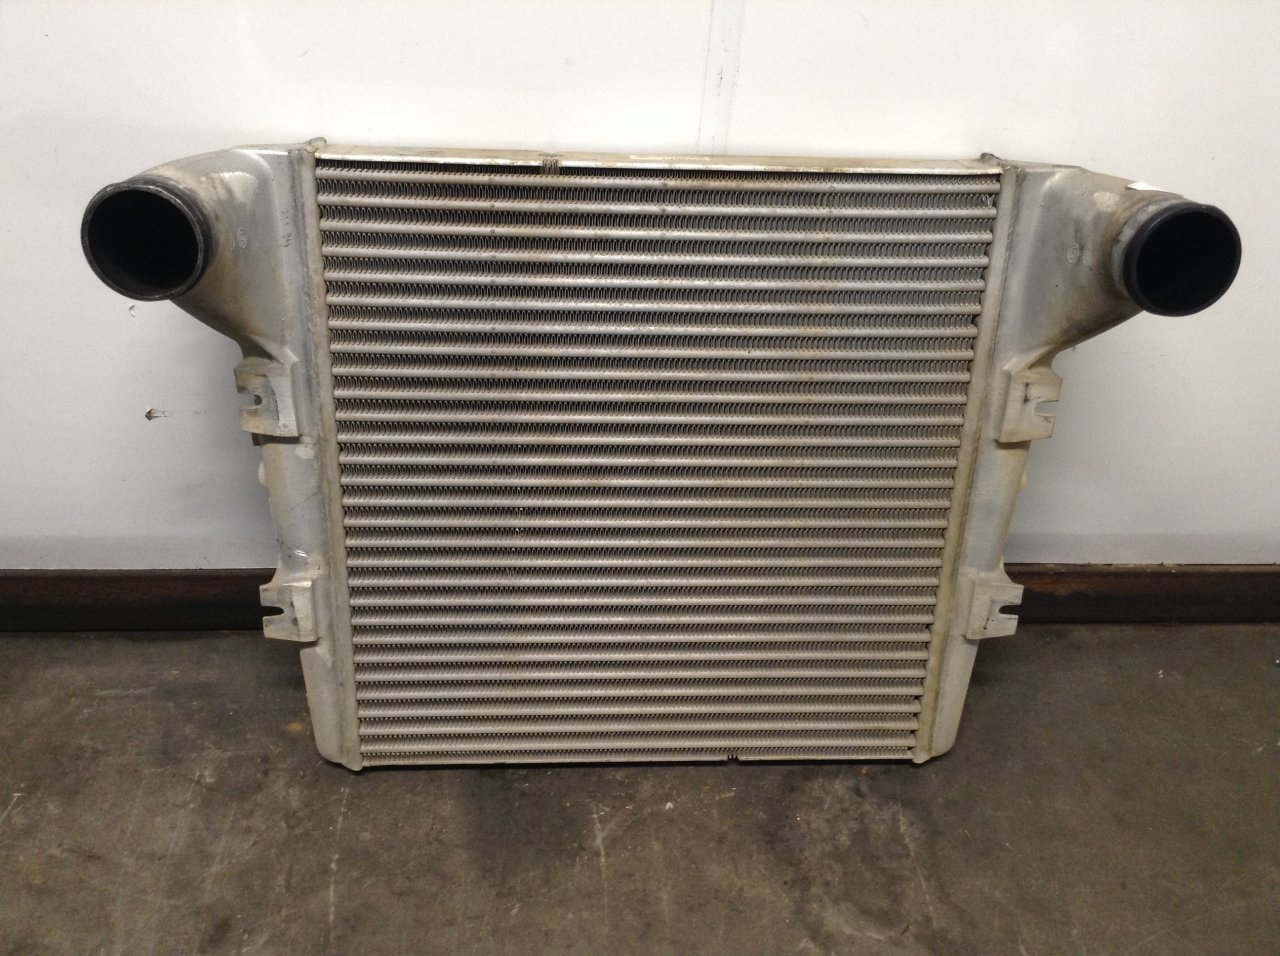 Blue Bird Vision Charge Air Cooler (ATAAC) - 1030383